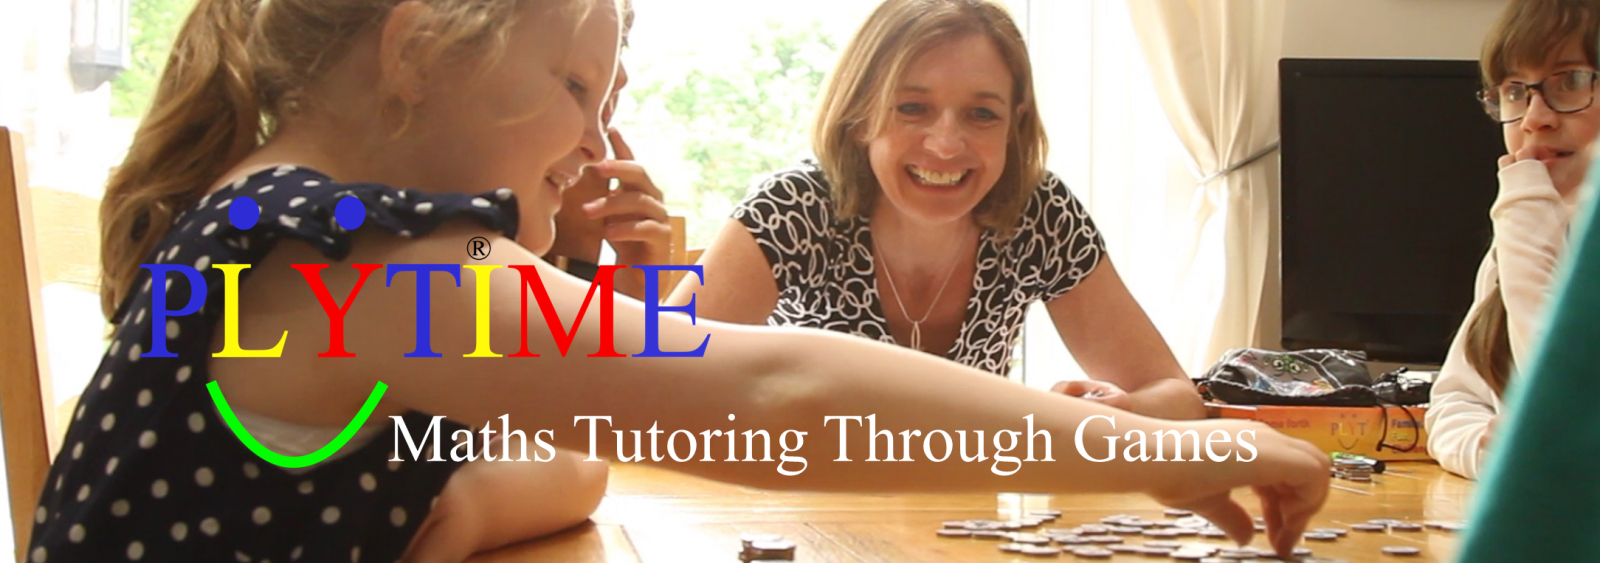 PLYTIME maths tutoring